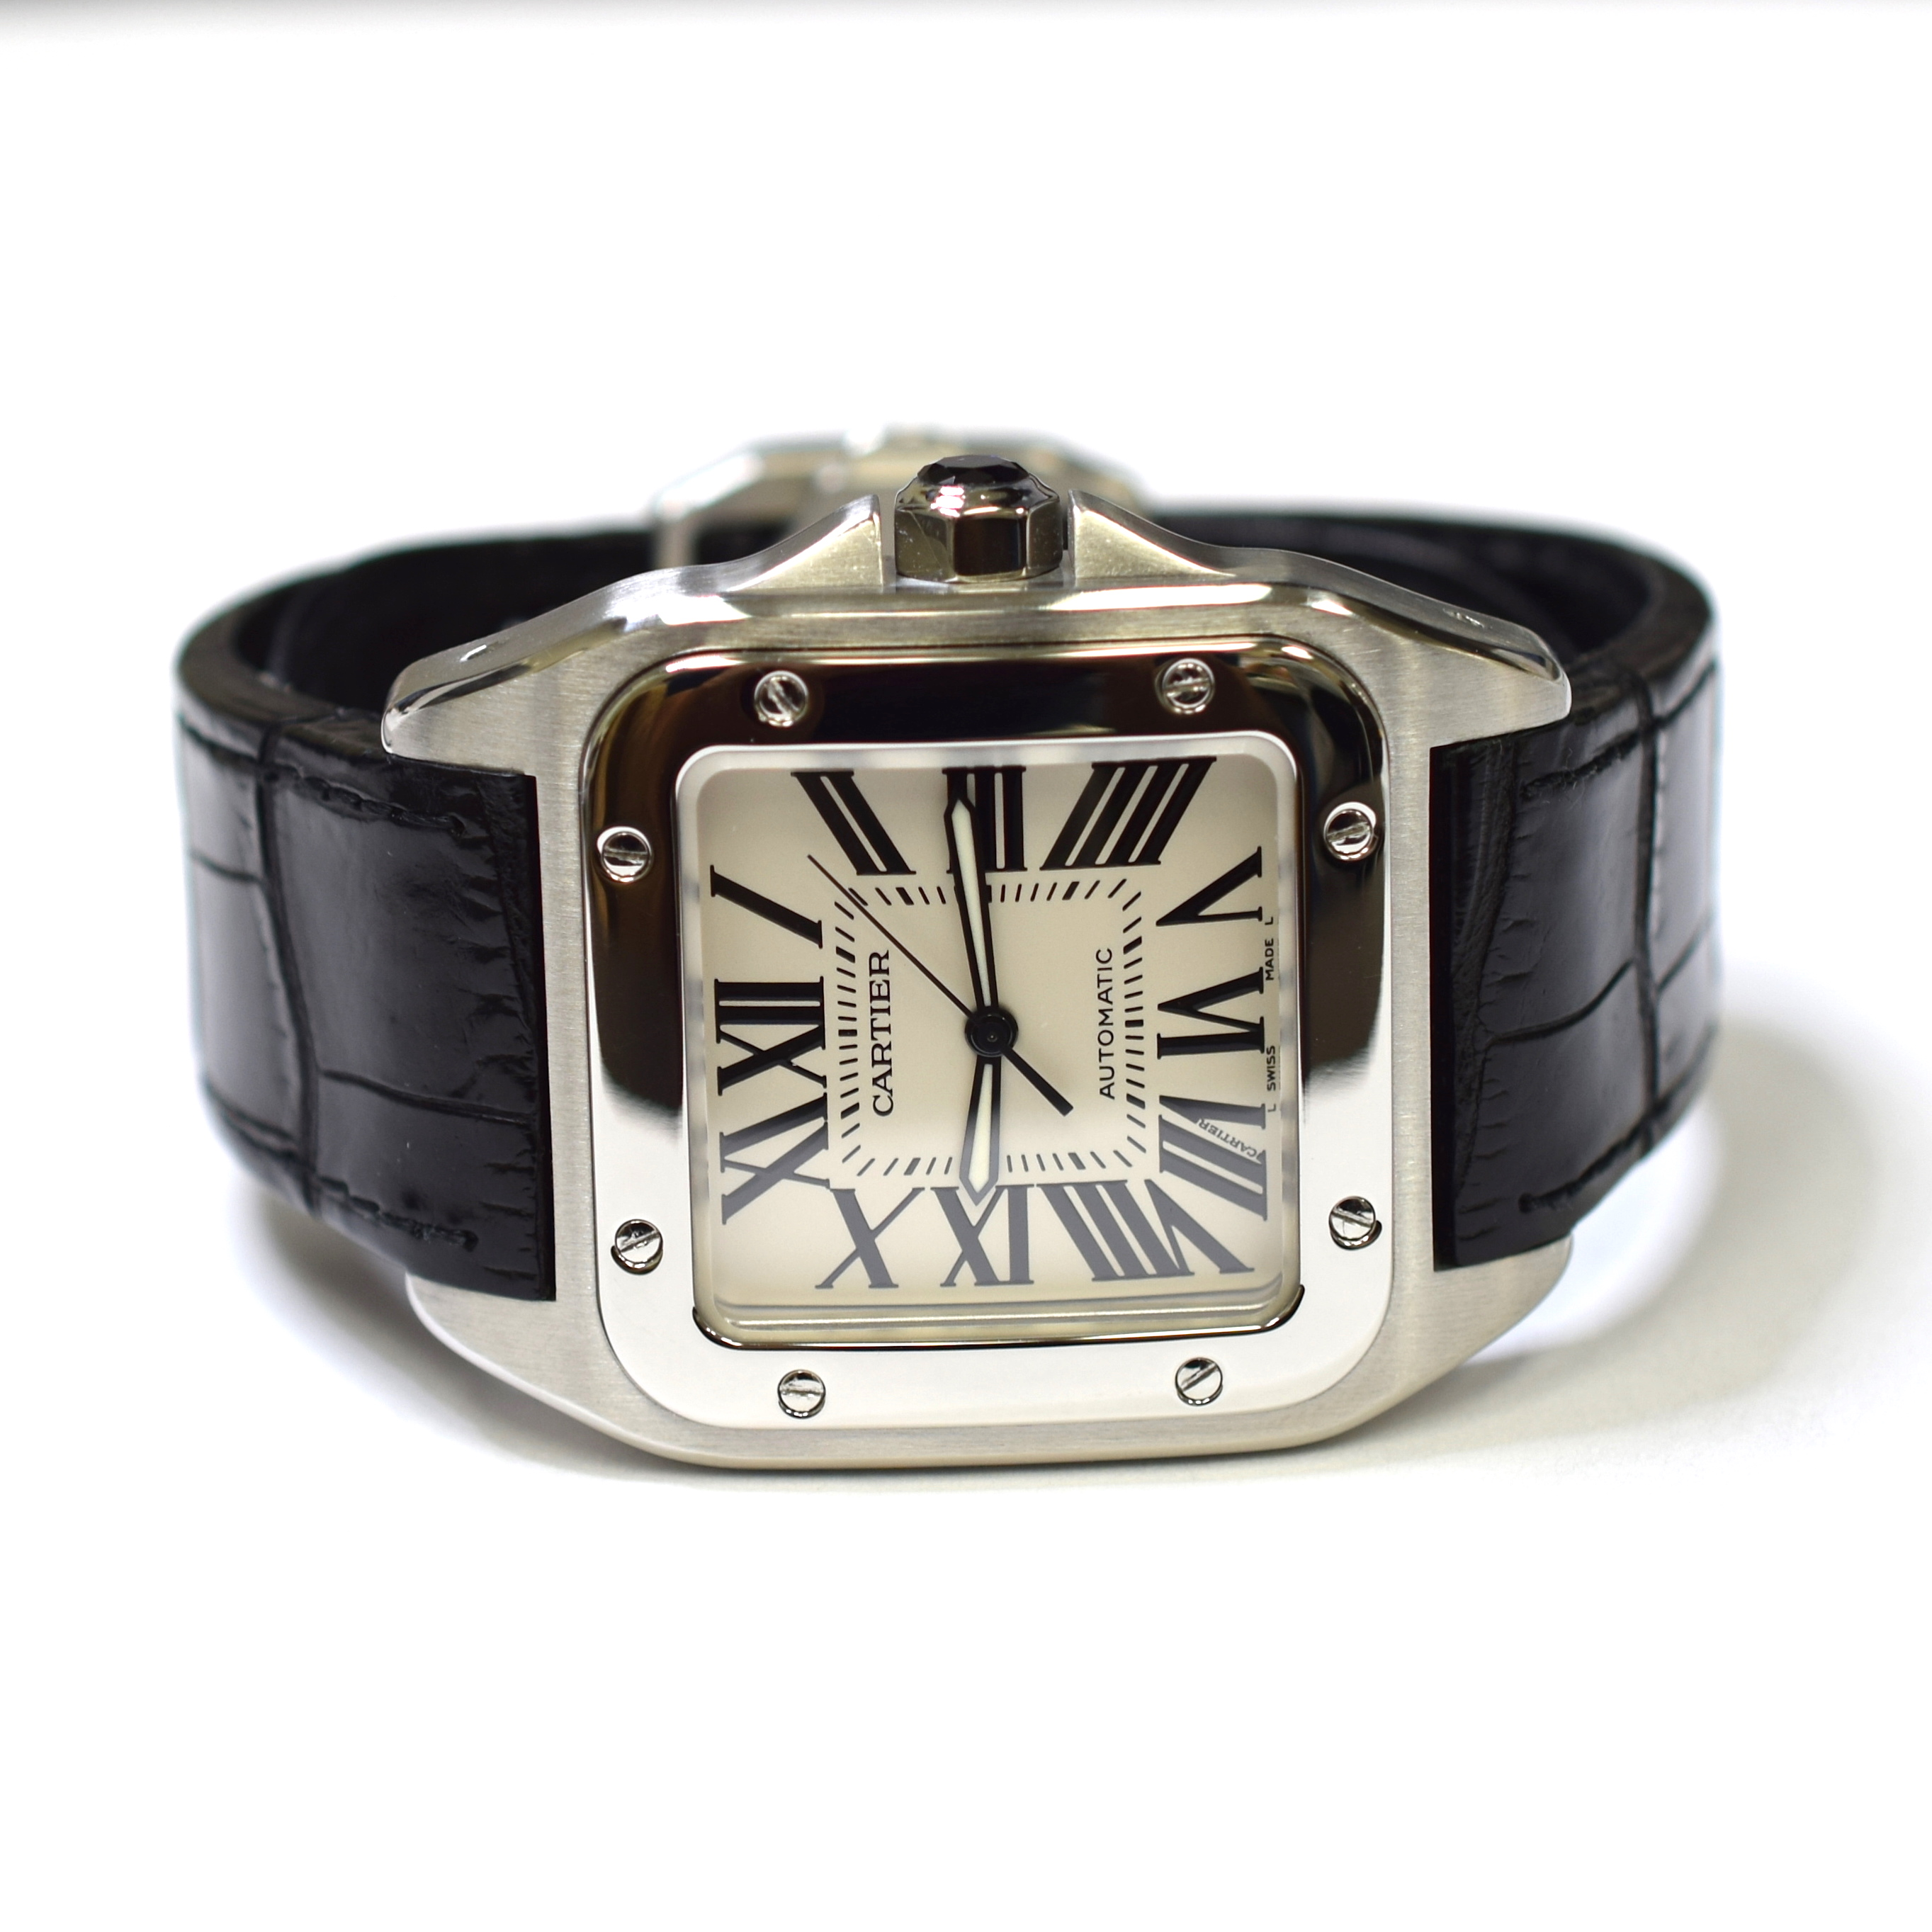 31b15920e8643 Cartier Santos 100 XL 38mm Stainless Steel Mens Watch on Leather Strap 2656